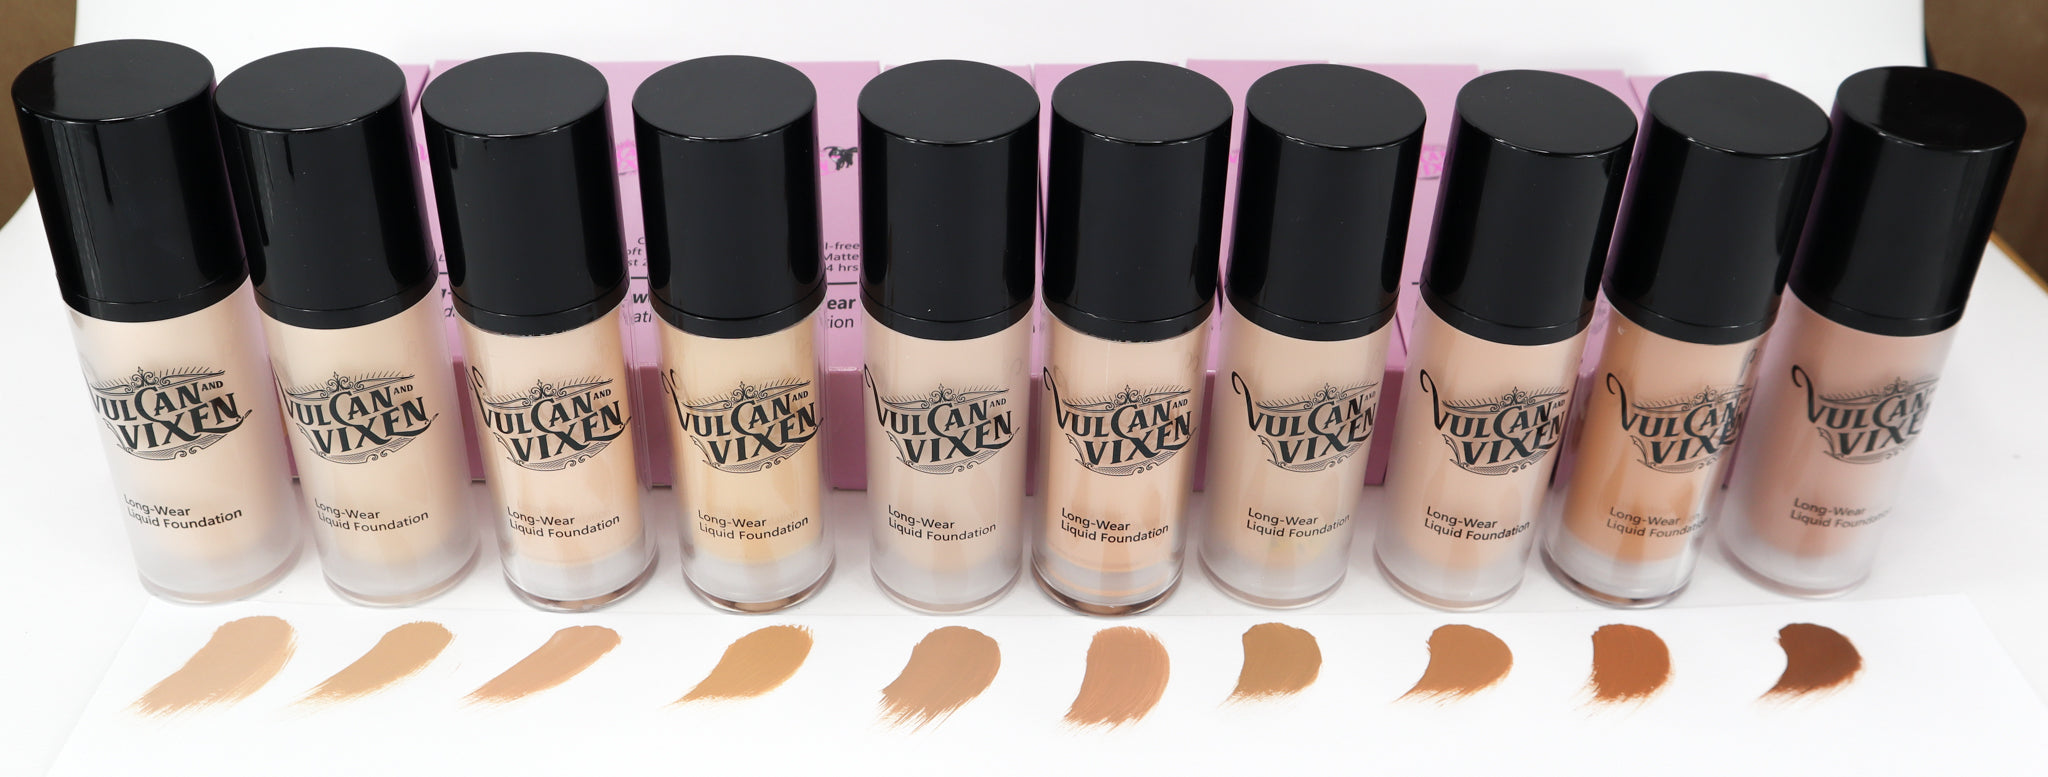 Long Wear Liquid Foundation 10 Shades